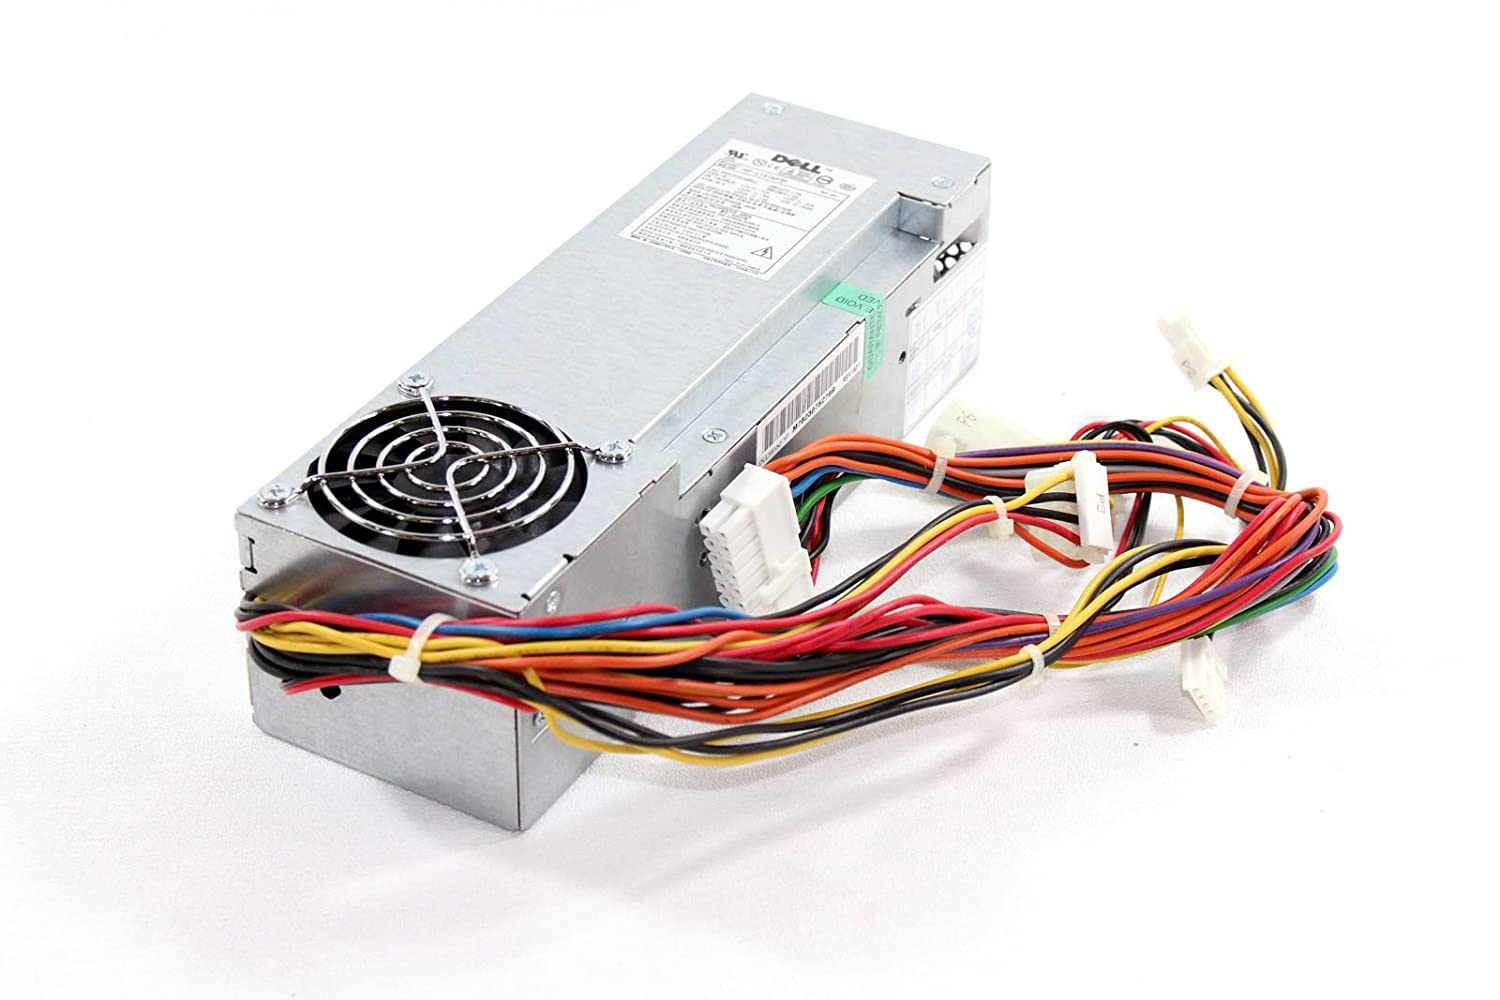 Genuine Dell 160w Power Supply PSU for Optiplex GX60, GX240, GX260, GX270, Dimension 4500C and Dimension 4600C SFF Small Form Factor Systems Identical Part Numbers: P2721, 3Y147, 3N200, P0813 7E220 Identical Model Numbers: HP-L161NF3P, PS-5161-7D, PS-5161-1D1, PS-5161-1D1S